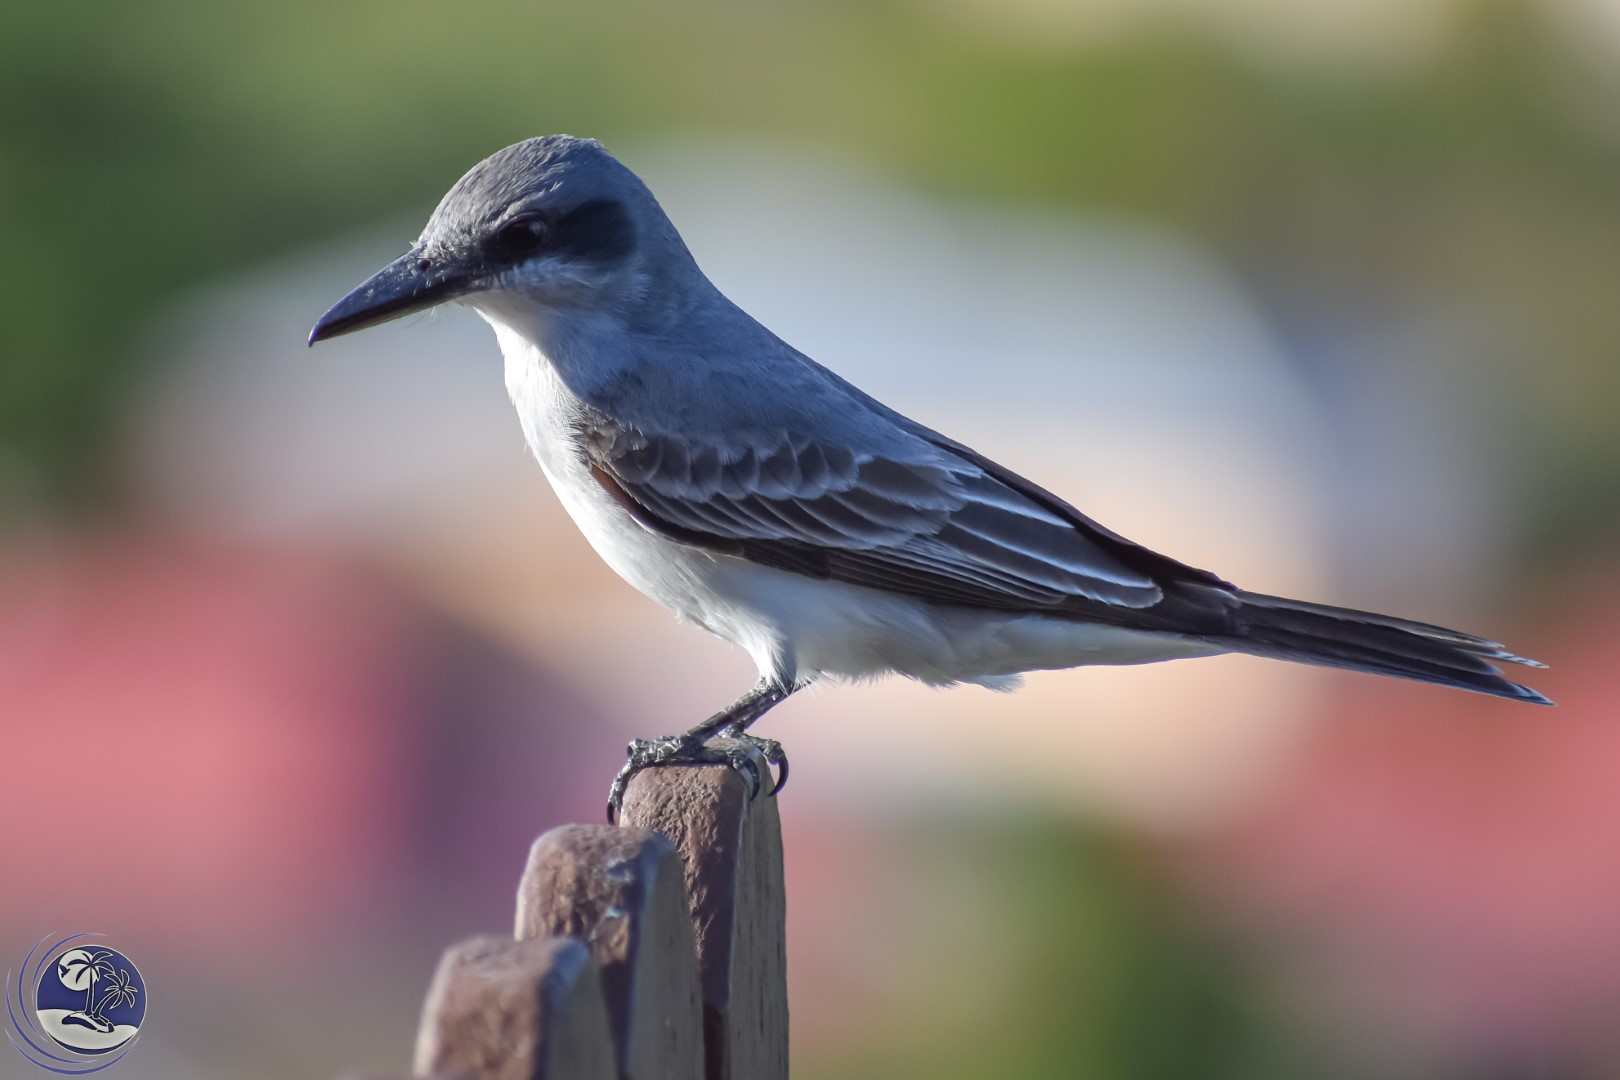 Grey Kingbird